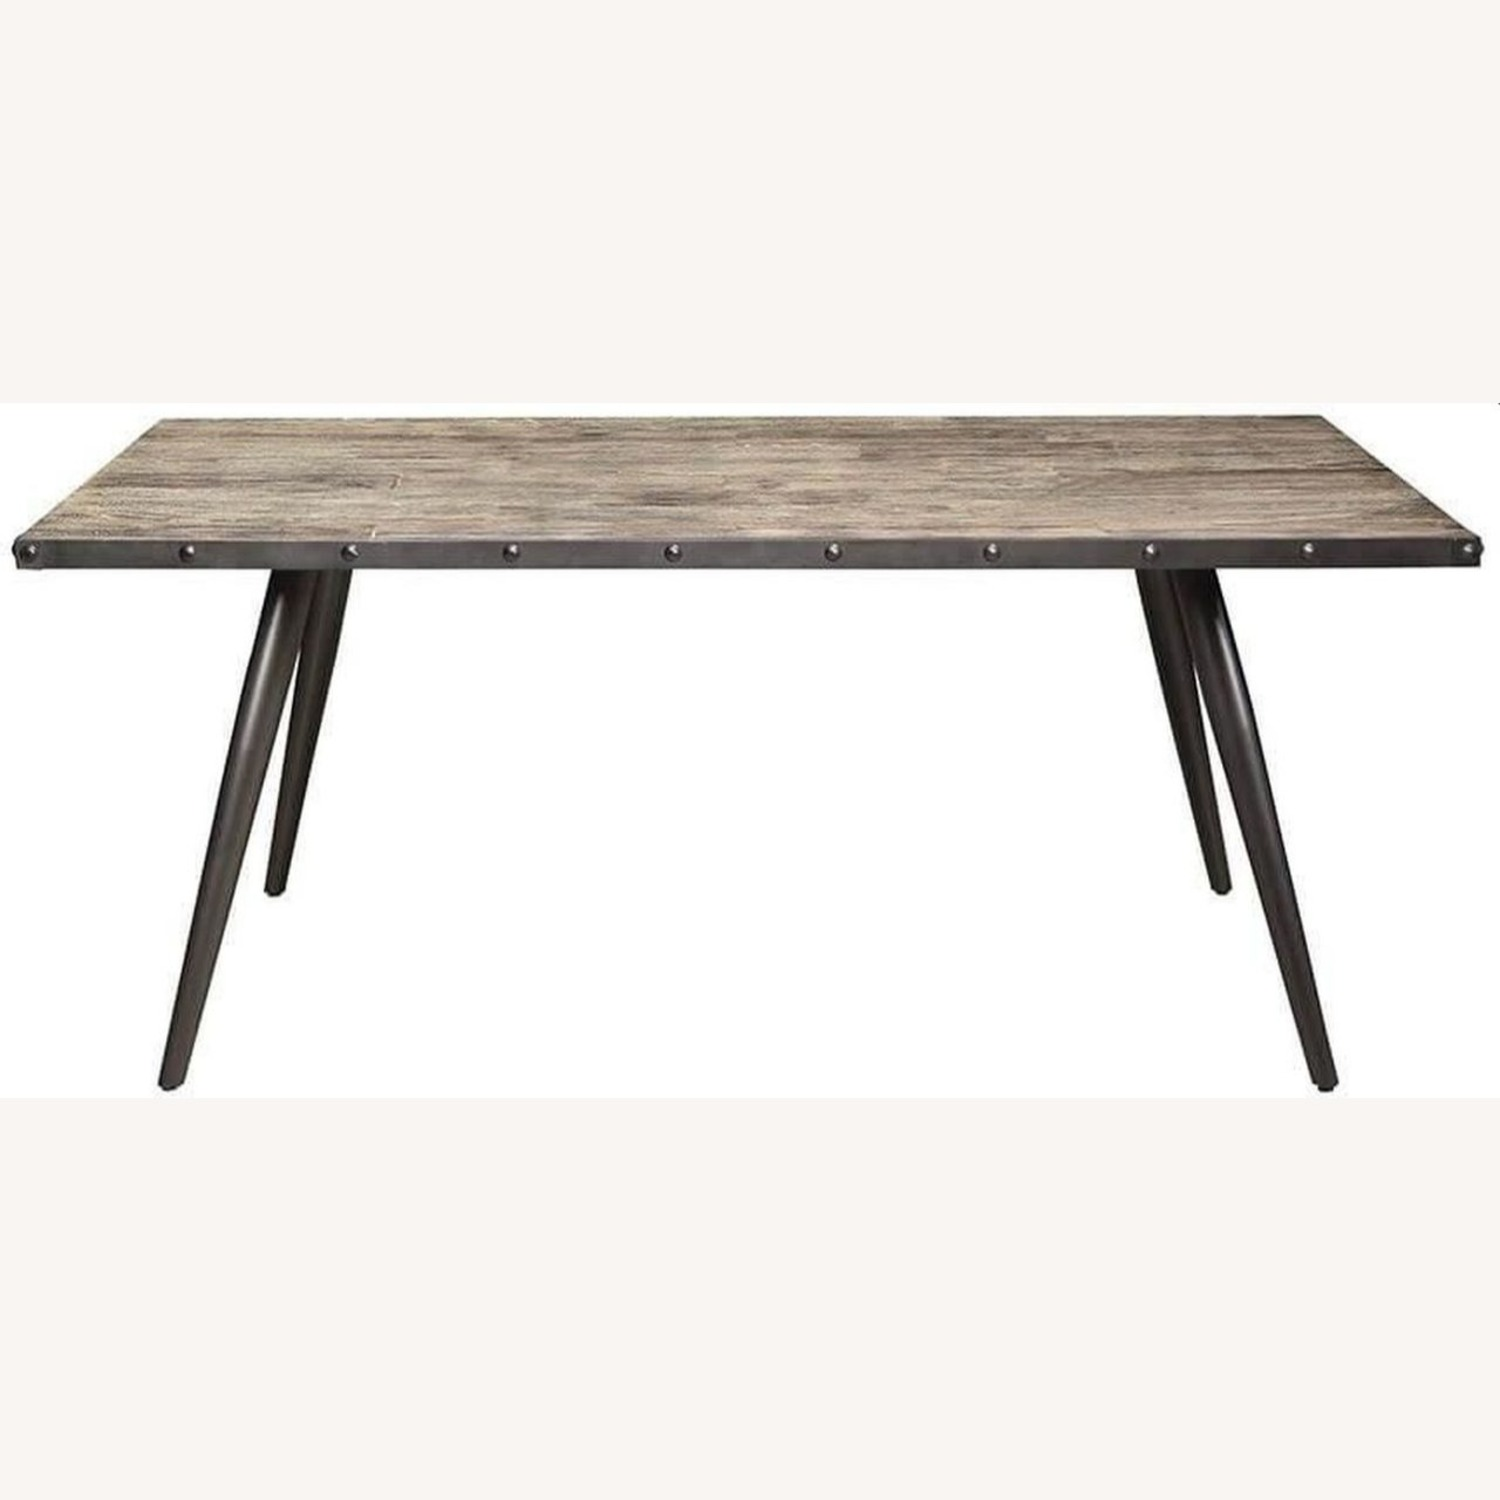 Mid-Century Dining Table Made From Weathered Elm - image-1